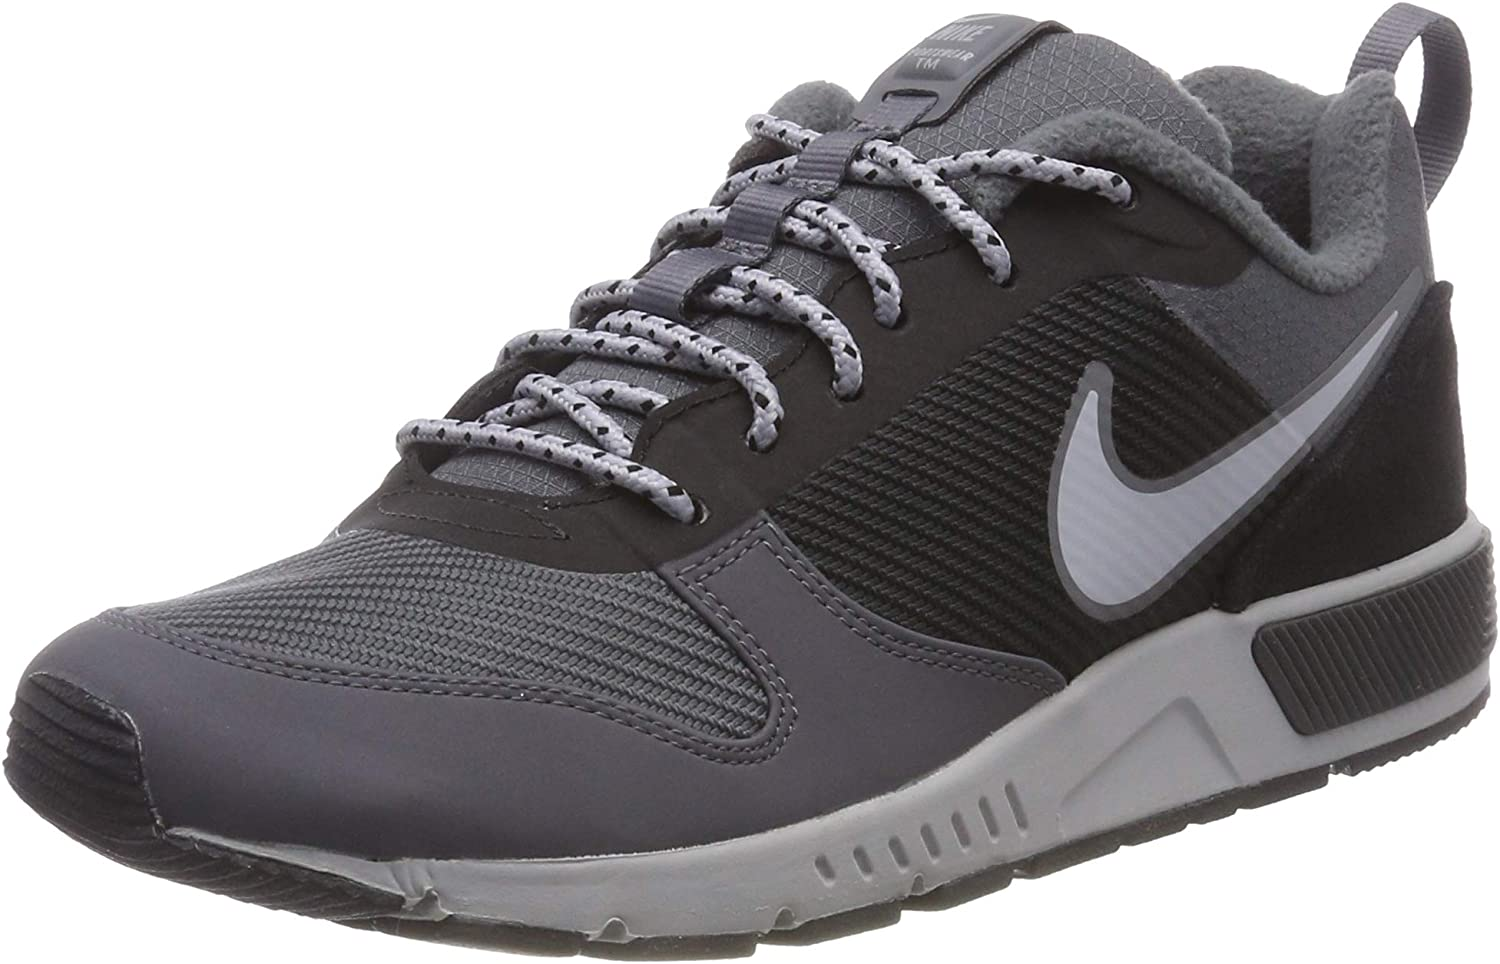 Nike Nightgazer Trail Mens Running Trainers 916775 Sneakers Shoes